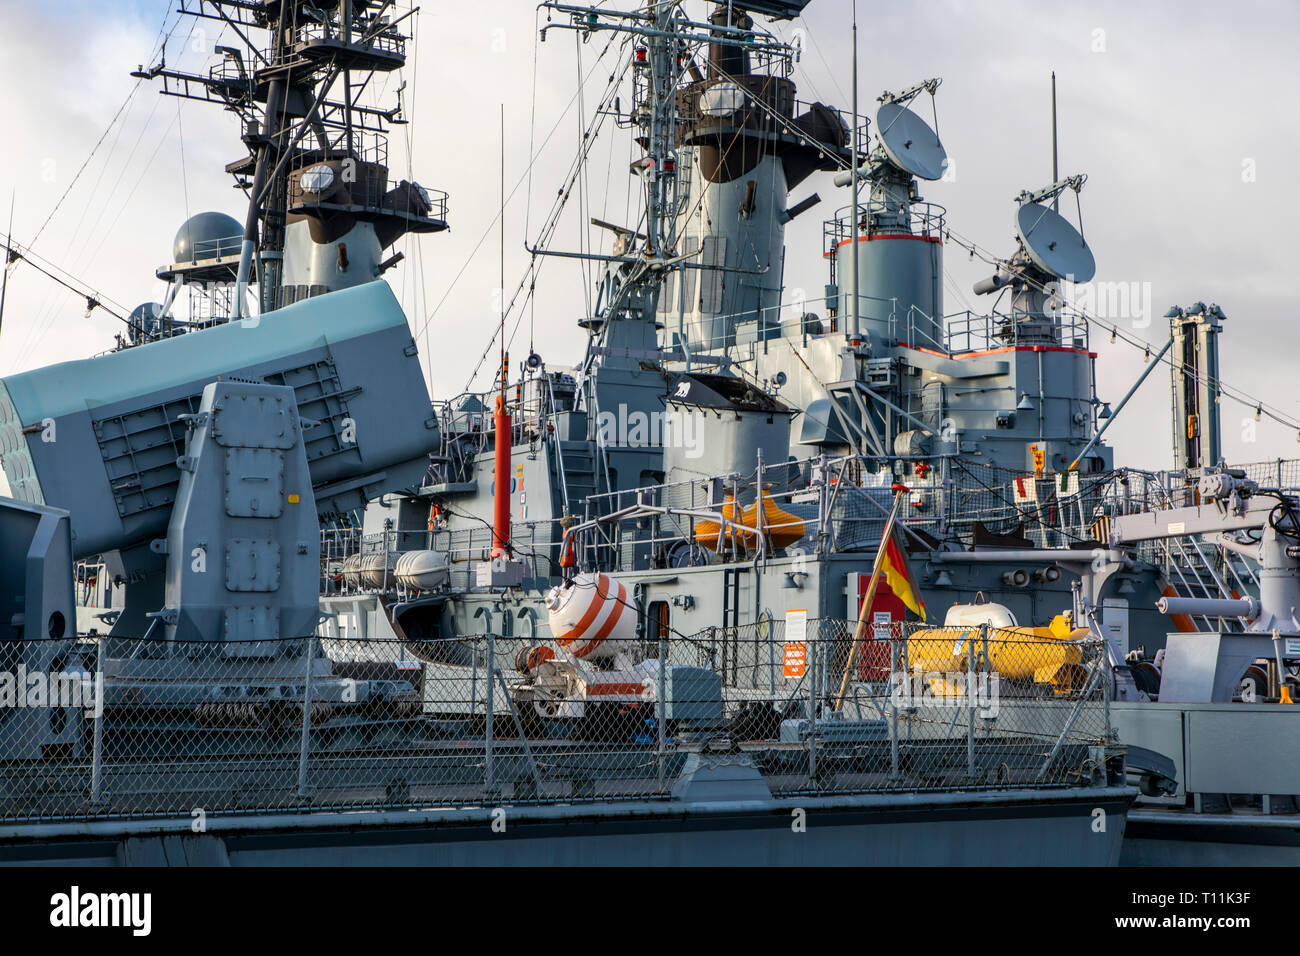 Wilhelmshaven, German Navy Museum, on the south beach, history of the German Navy, warships of the German Navy and the former NVA, destroyer Mölders o Stock Photo